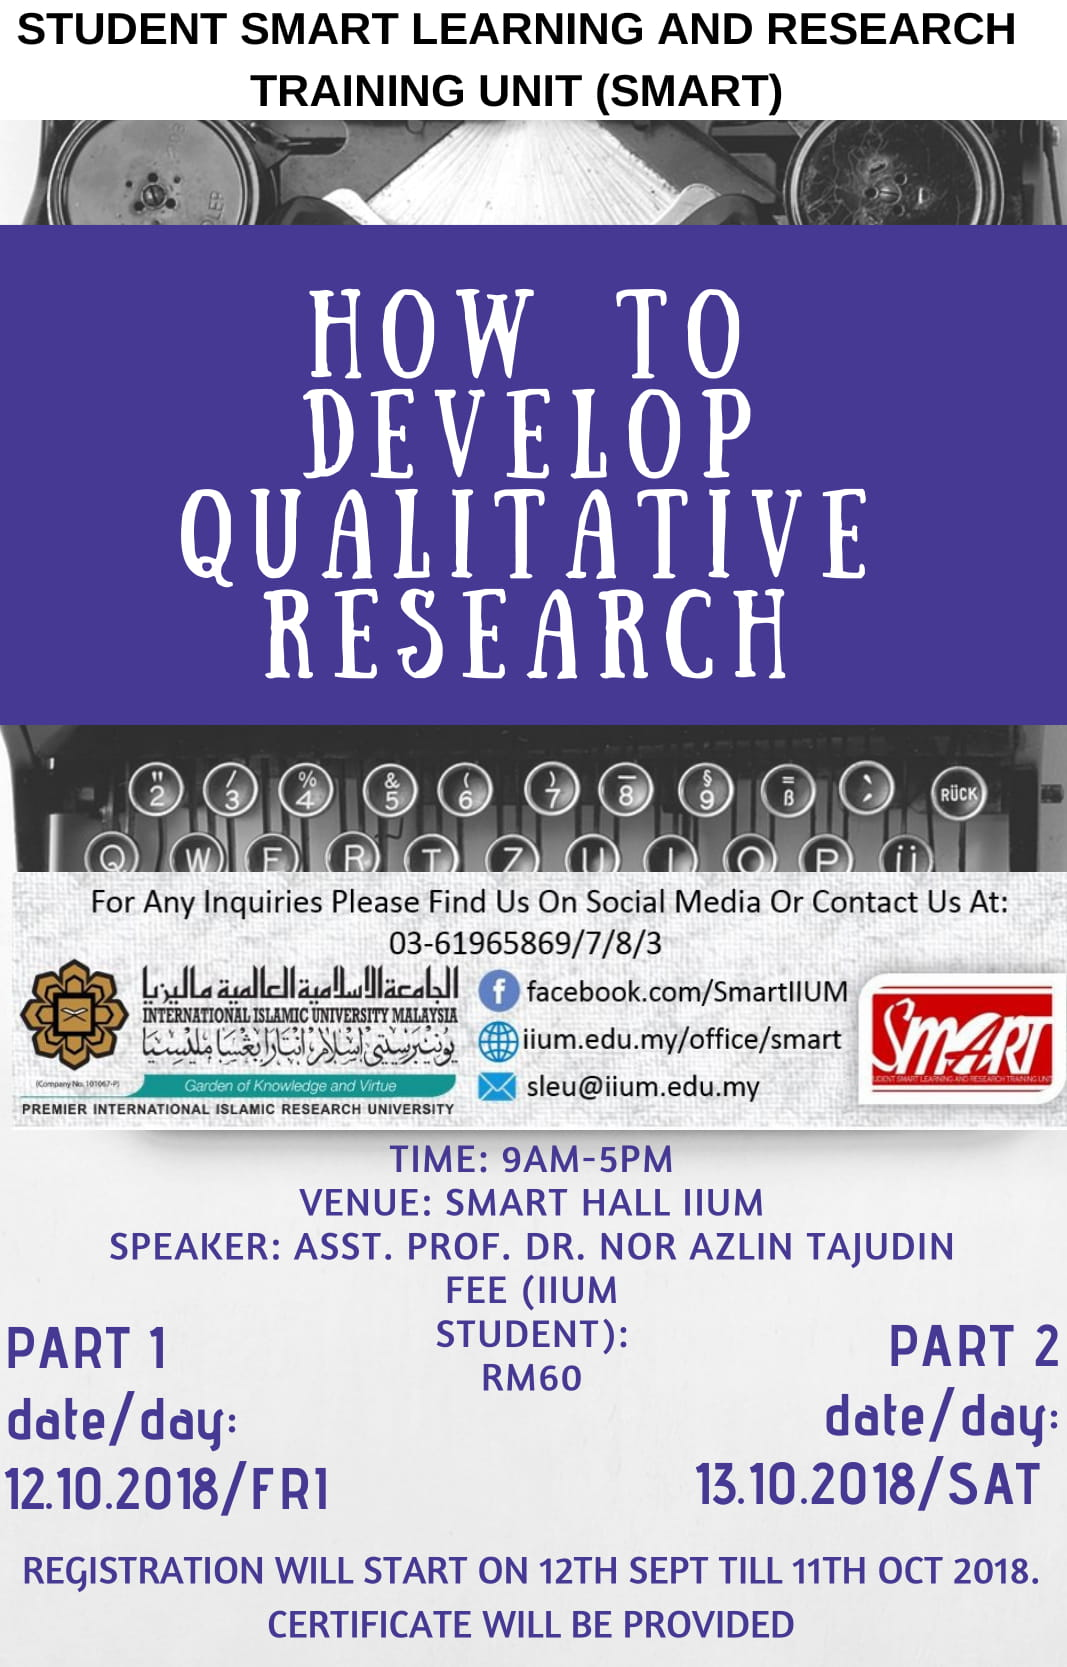 WORKSHOP : HOW TO DEVELOP QUALITATIVE RESEARCH